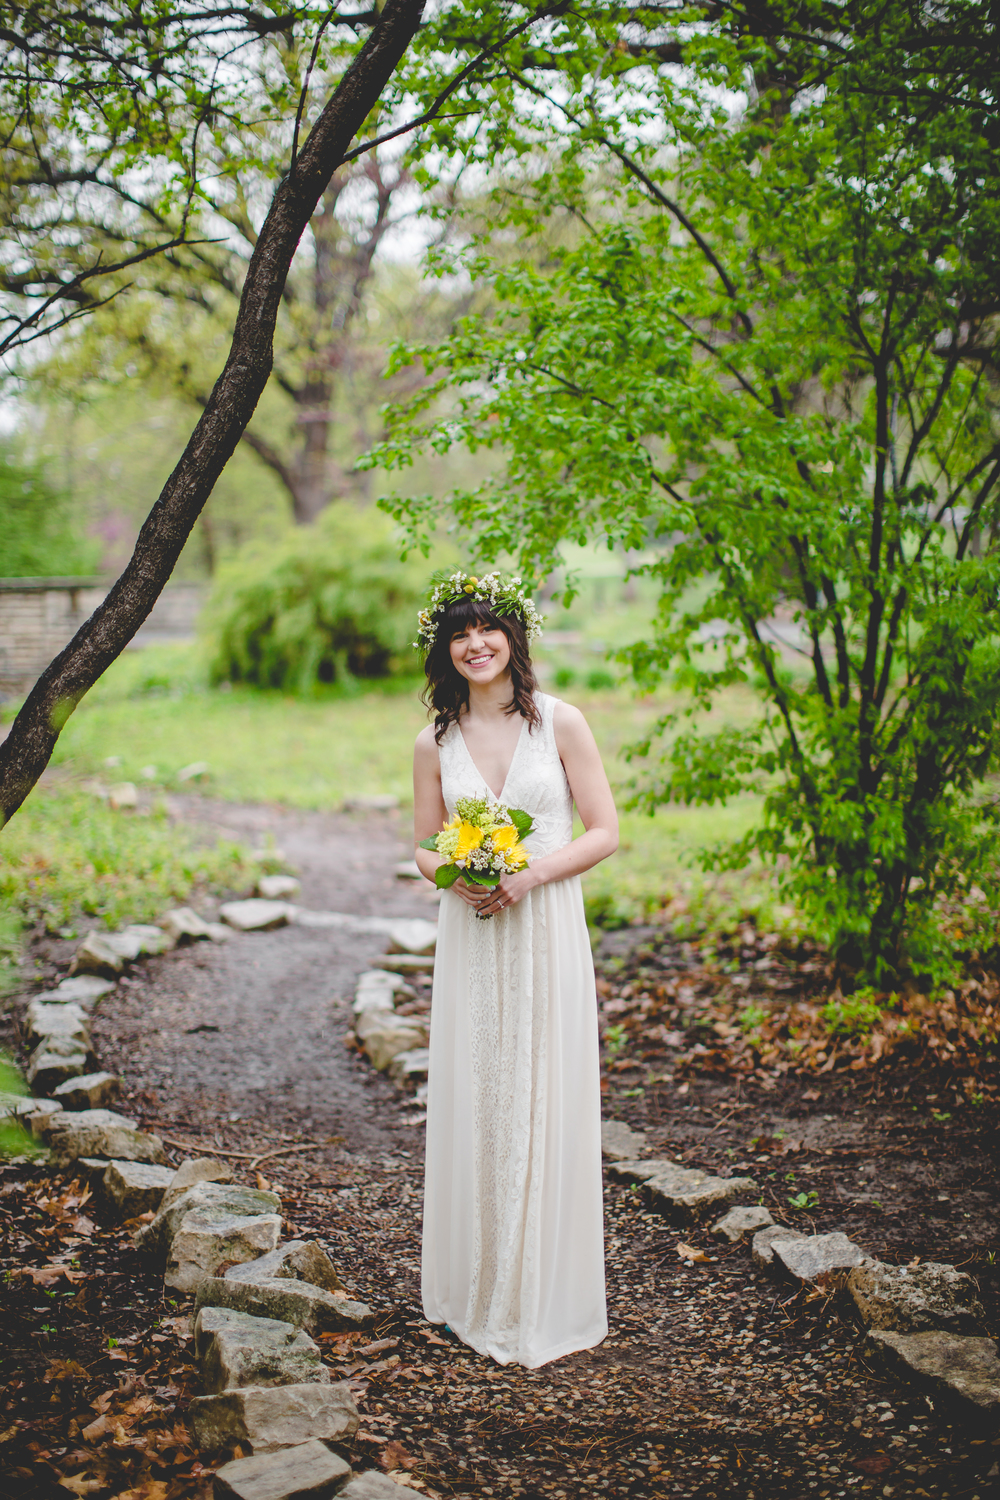 This wedding was in Kansas in April so there was a pretty good chance it would rain. And rain it did. The vibrancy of the Spring day worked so well with the bright colors.